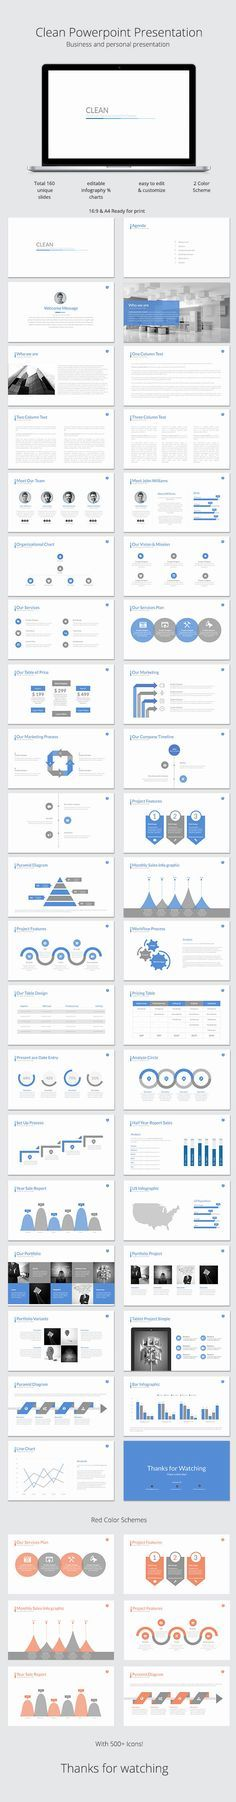 170 best layout images on pinterest presentation layout keynote buy clean powerpoint template by azindustry on graphicriver get a clean modern and efficient powerpoint presentation toneelgroepblik Gallery